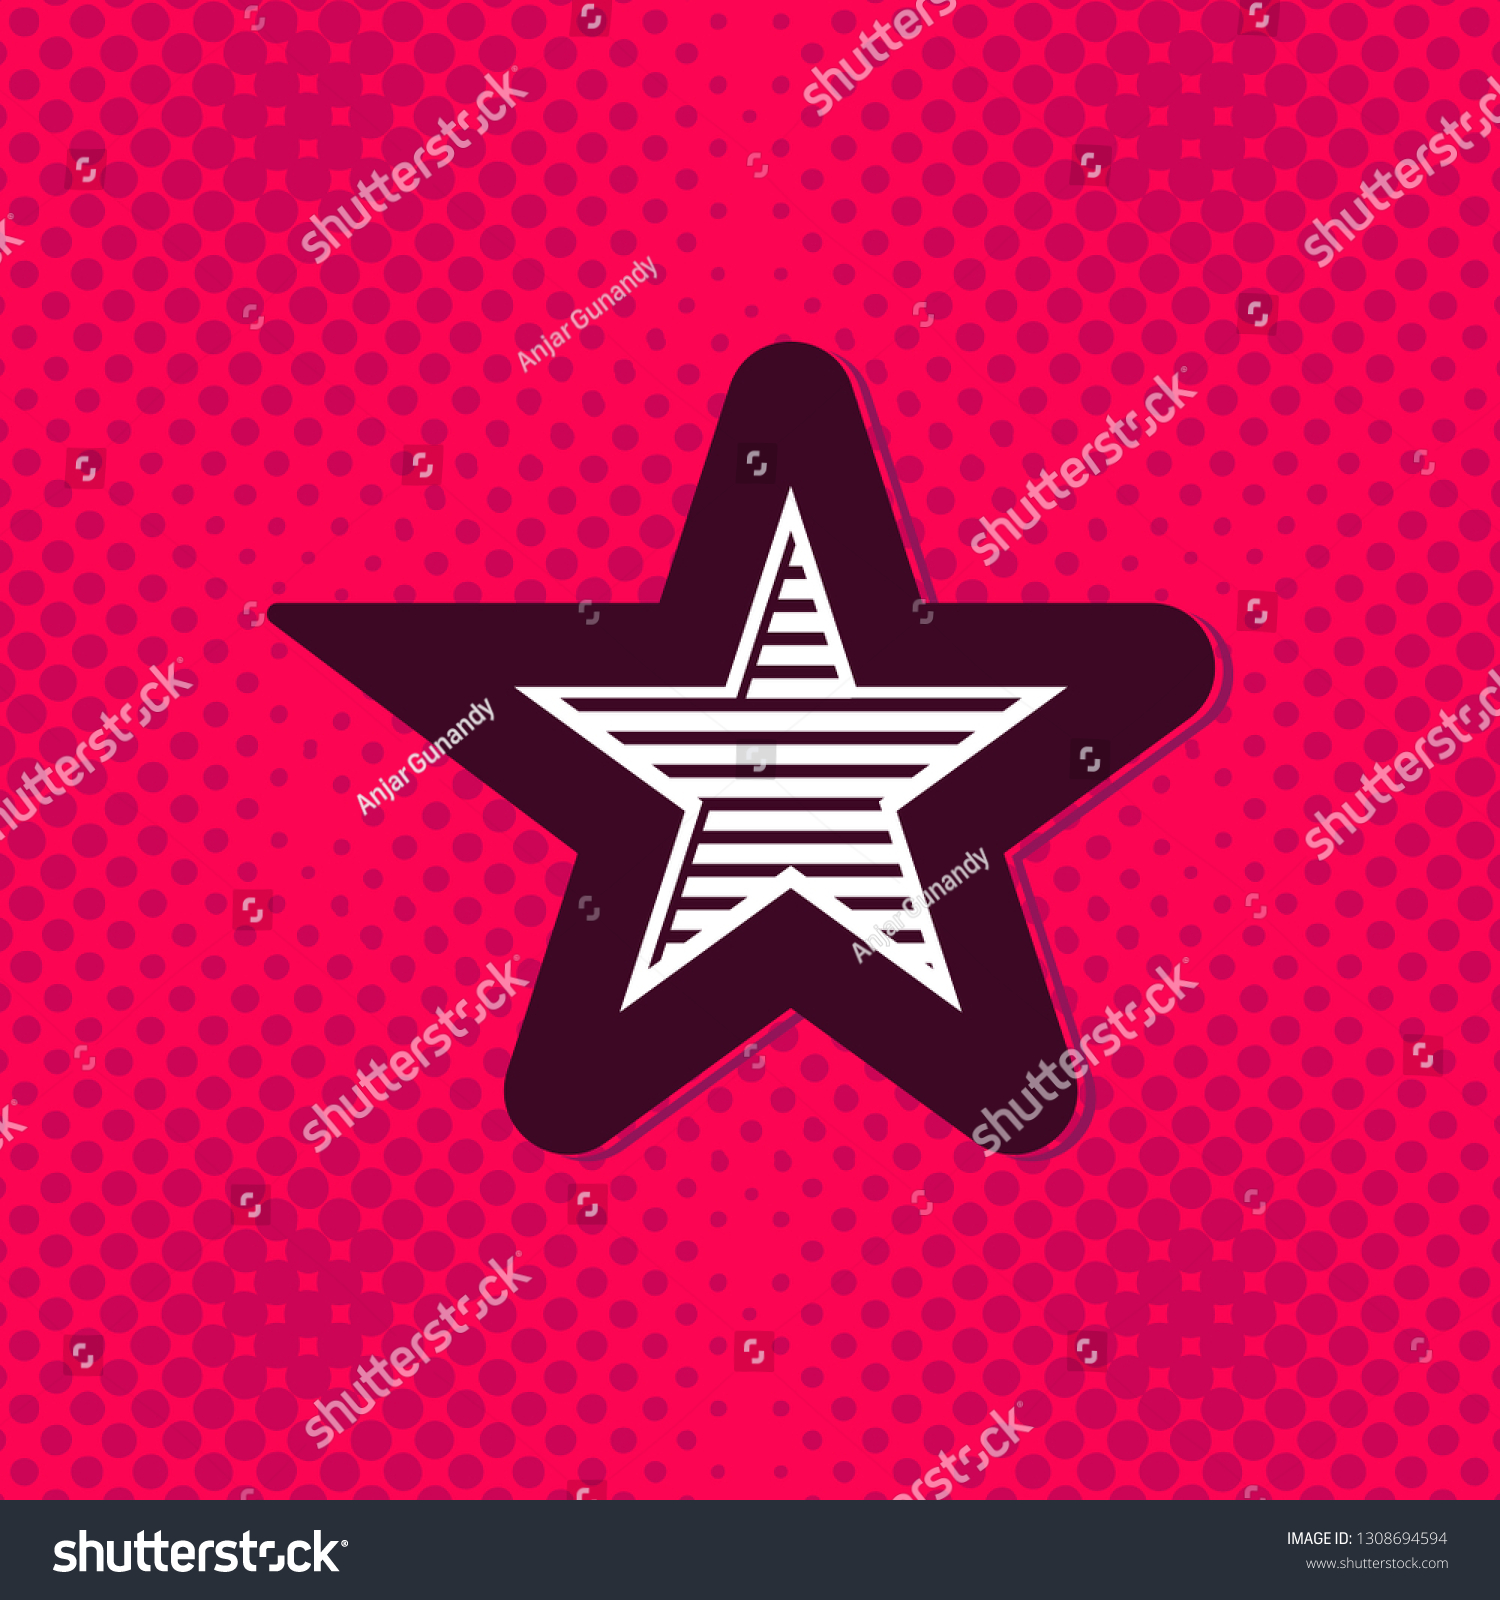 Star Vintage Monogram Logo Pop Art Stock Vector Royalty Free 1308694594